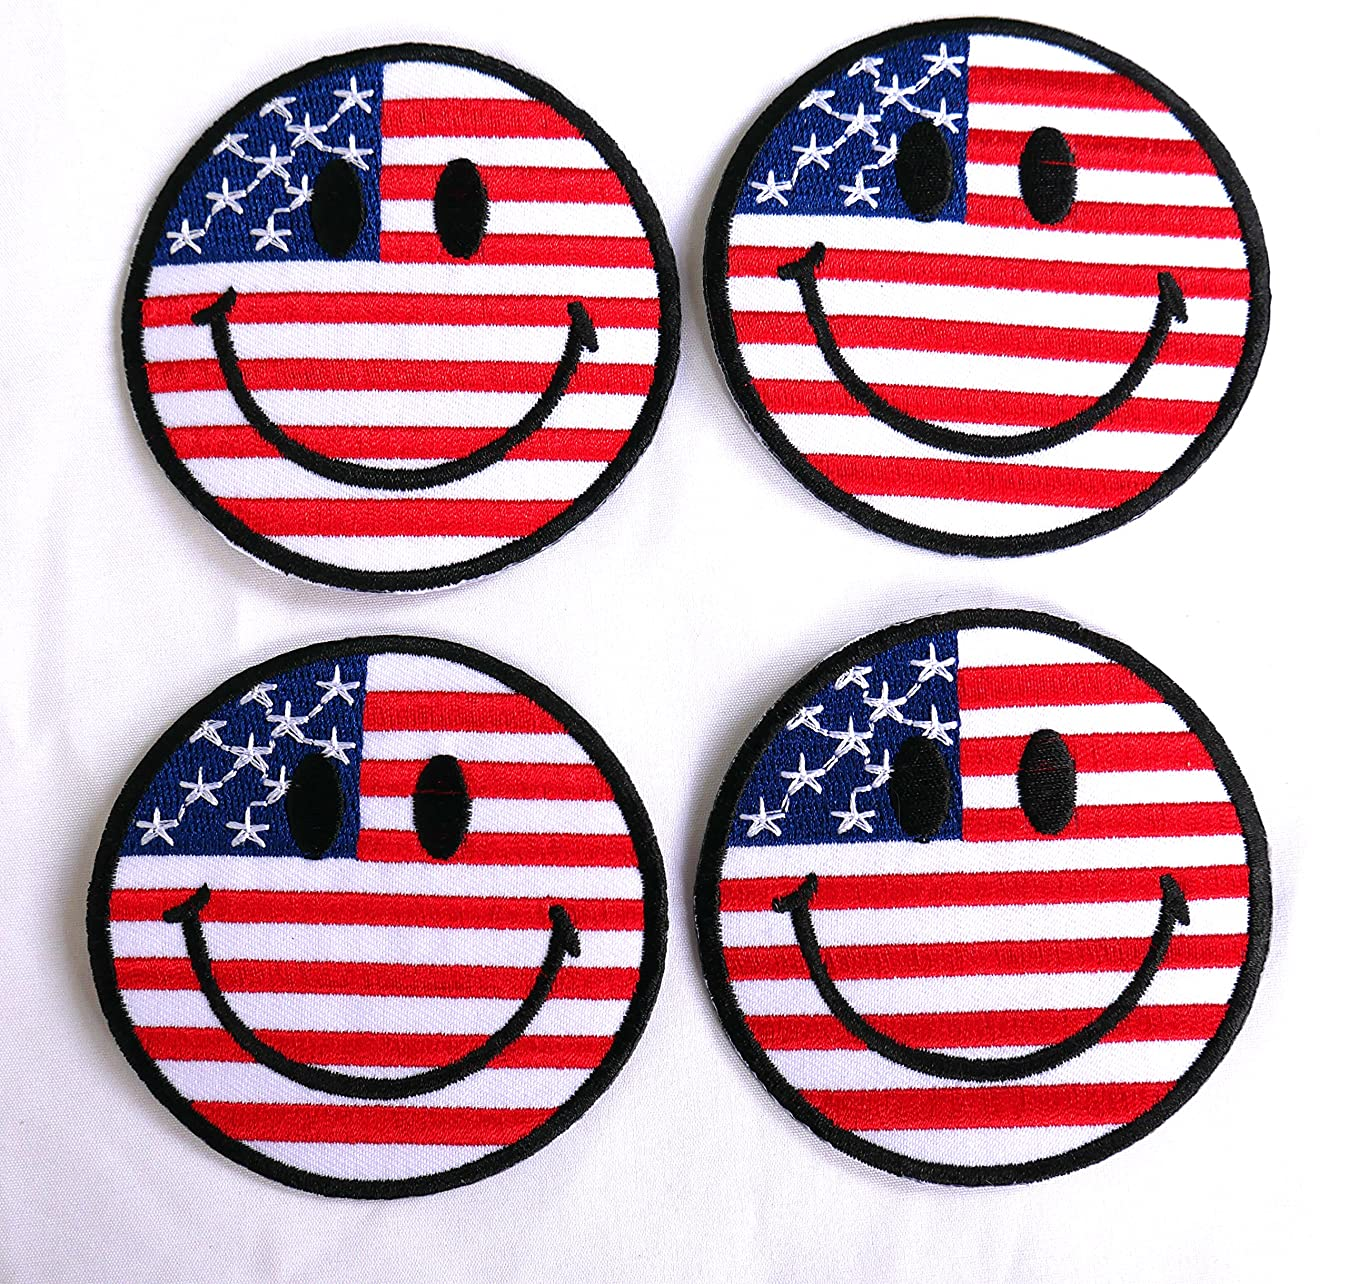 Set of 4 Smile Face UNITED STATES US USA American Flag Patch Sew Iron on Applique Embroidered Emblem Badge Patch e7206036968